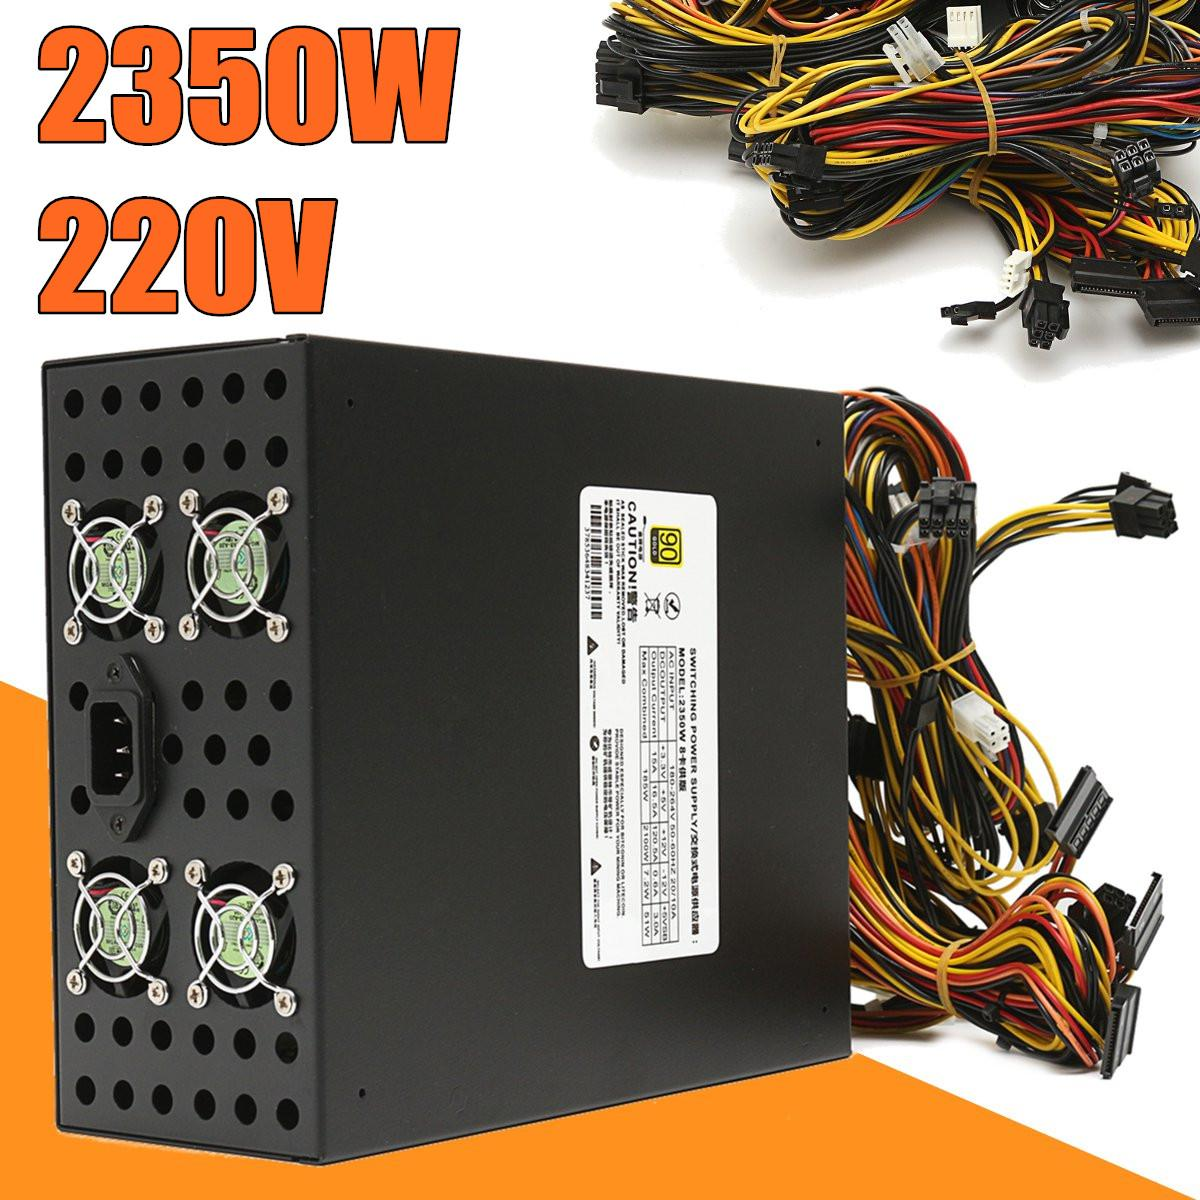 Mining Full Module Output Rated 2350W 220V Power Supply High Efficiency with 8 CPU Fit for All Kind of Bitcoin Mining Machine PC 2018 high efficiency rated 2200w power supply with emc with dual 8cm low noise cooling fans for bitcoin mining machine